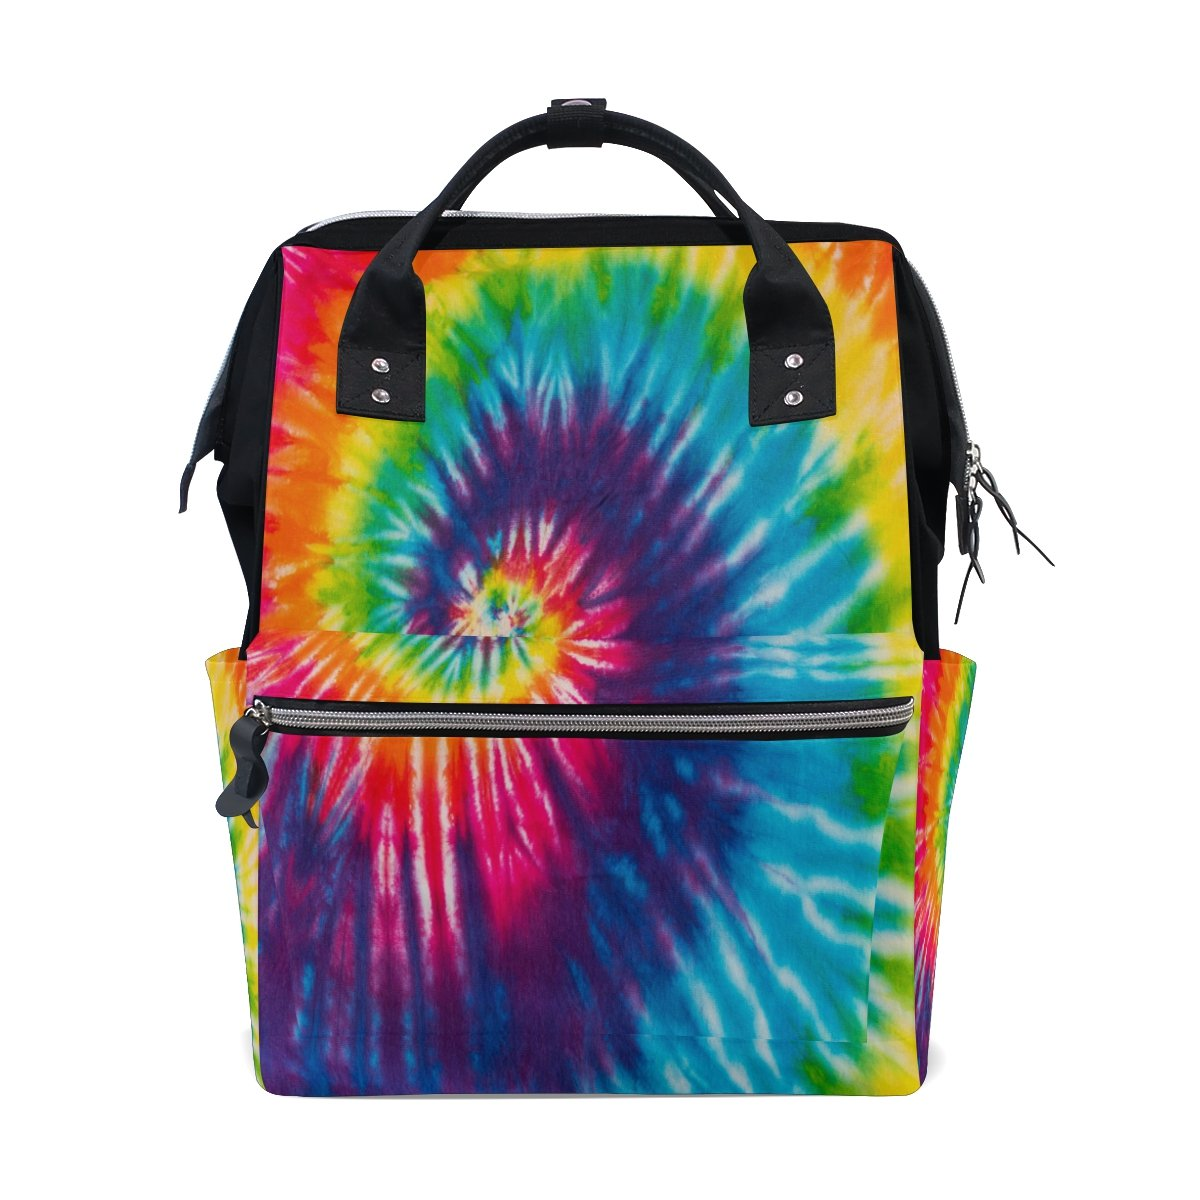 WOZO Abstract Swirl Tie Dye Color Multi-function Diaper Bags Backpack Travel Bag